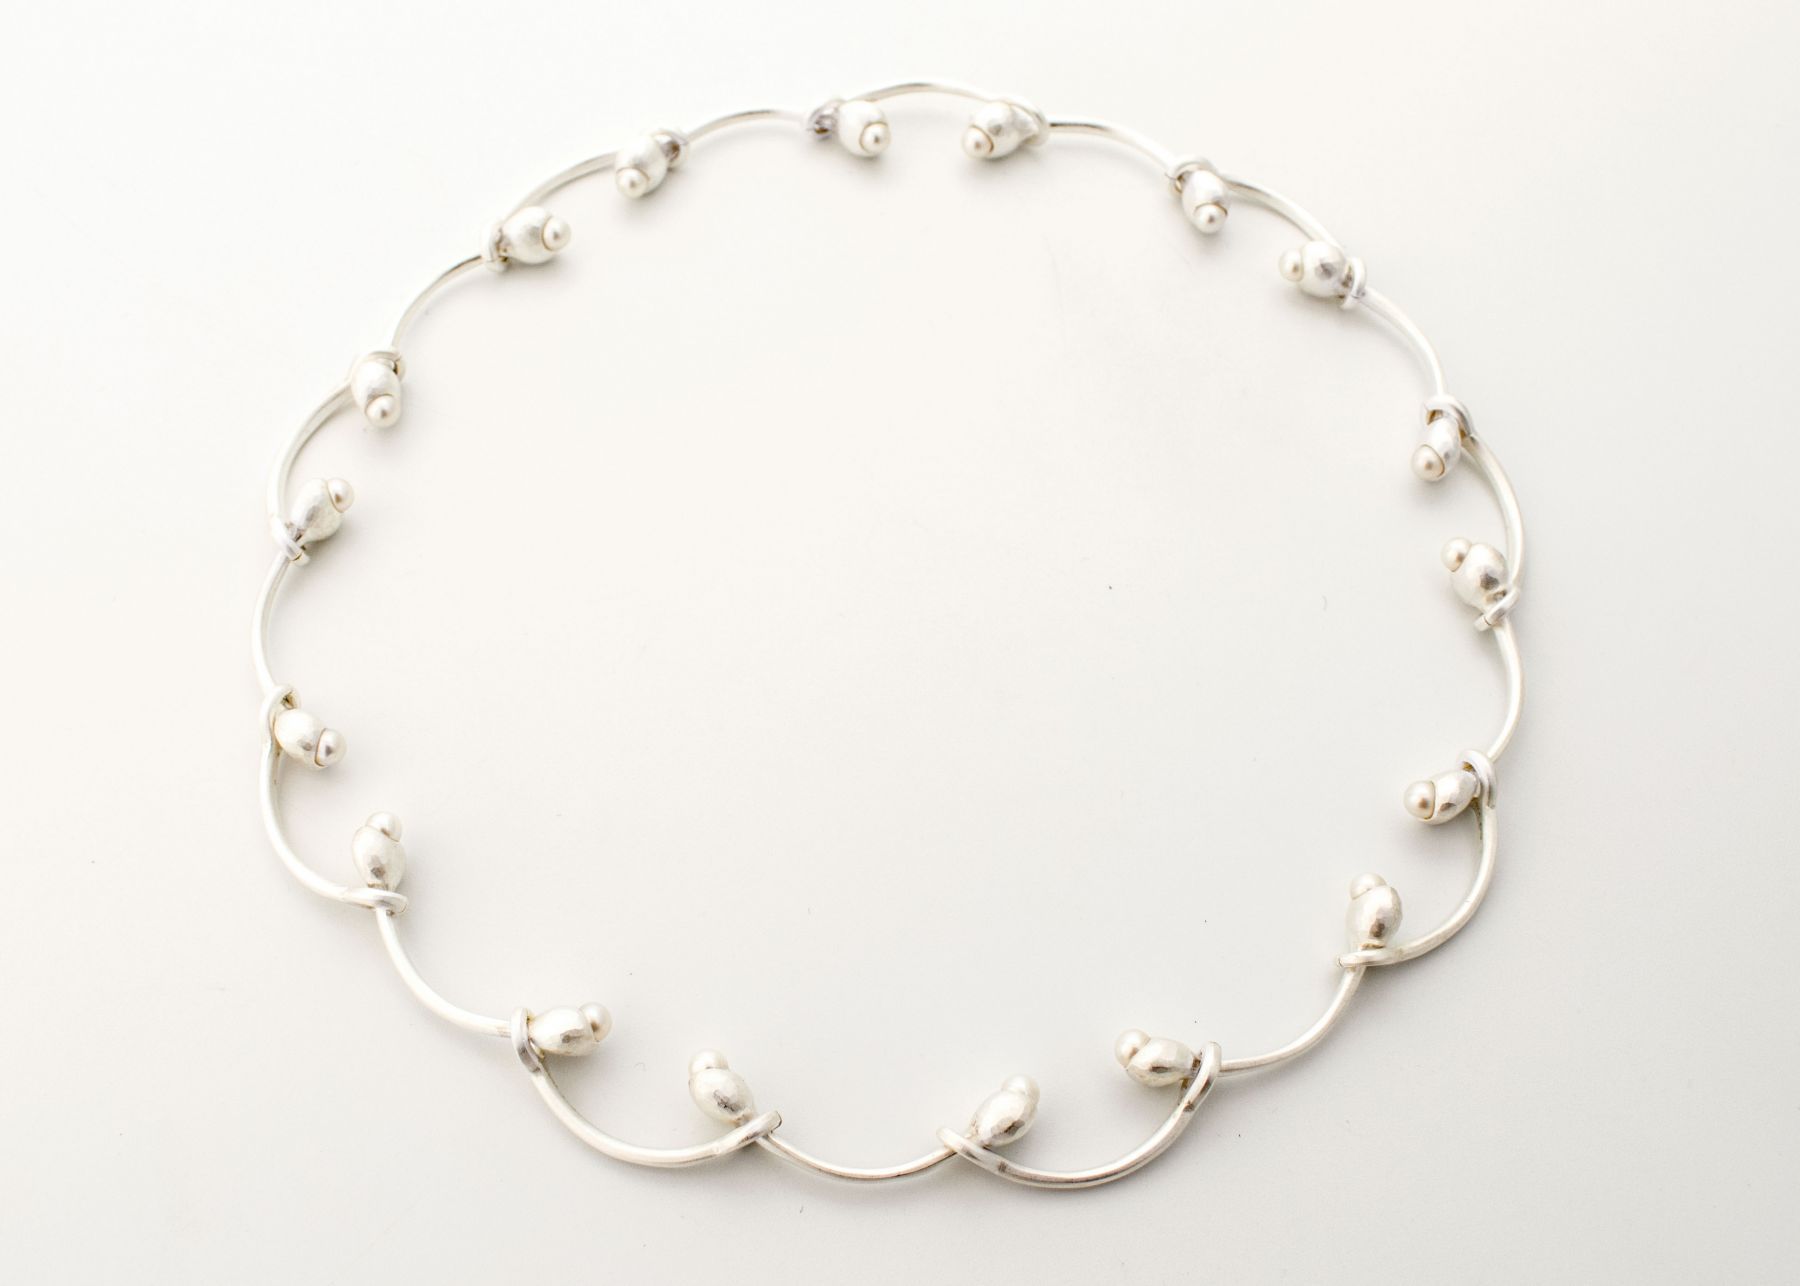 Ute Eitzenhöffer, necklace, silver, pearls